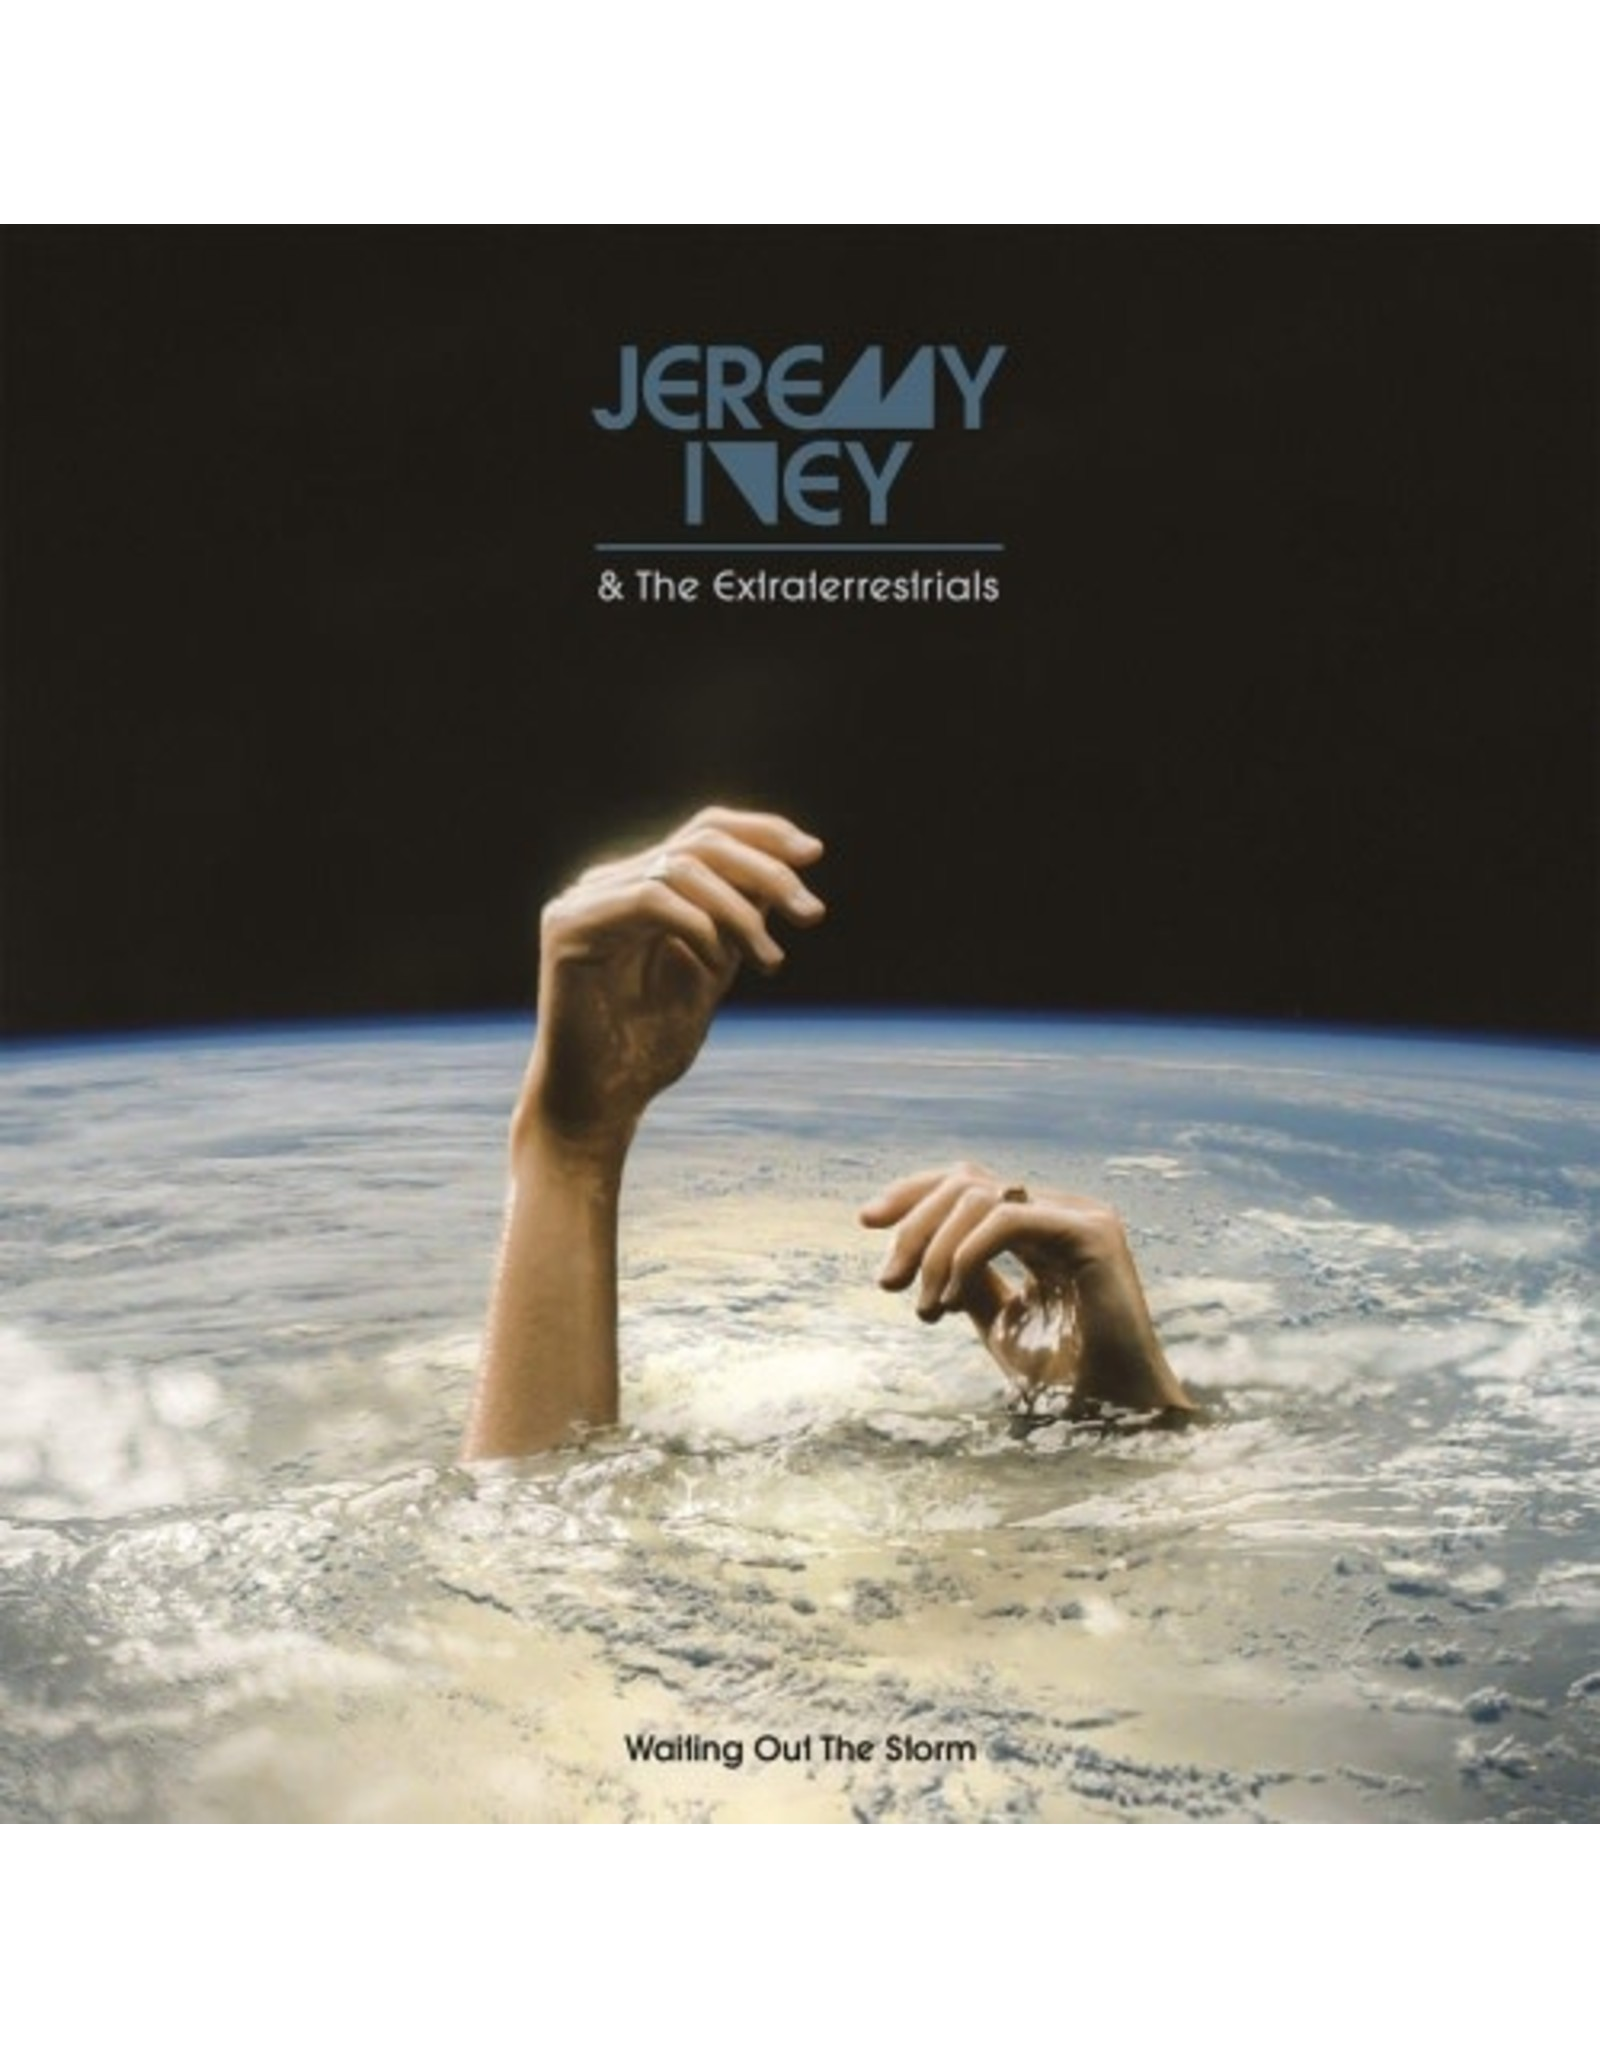 Ivey, Jeremy - Waiting Out the Storm LP